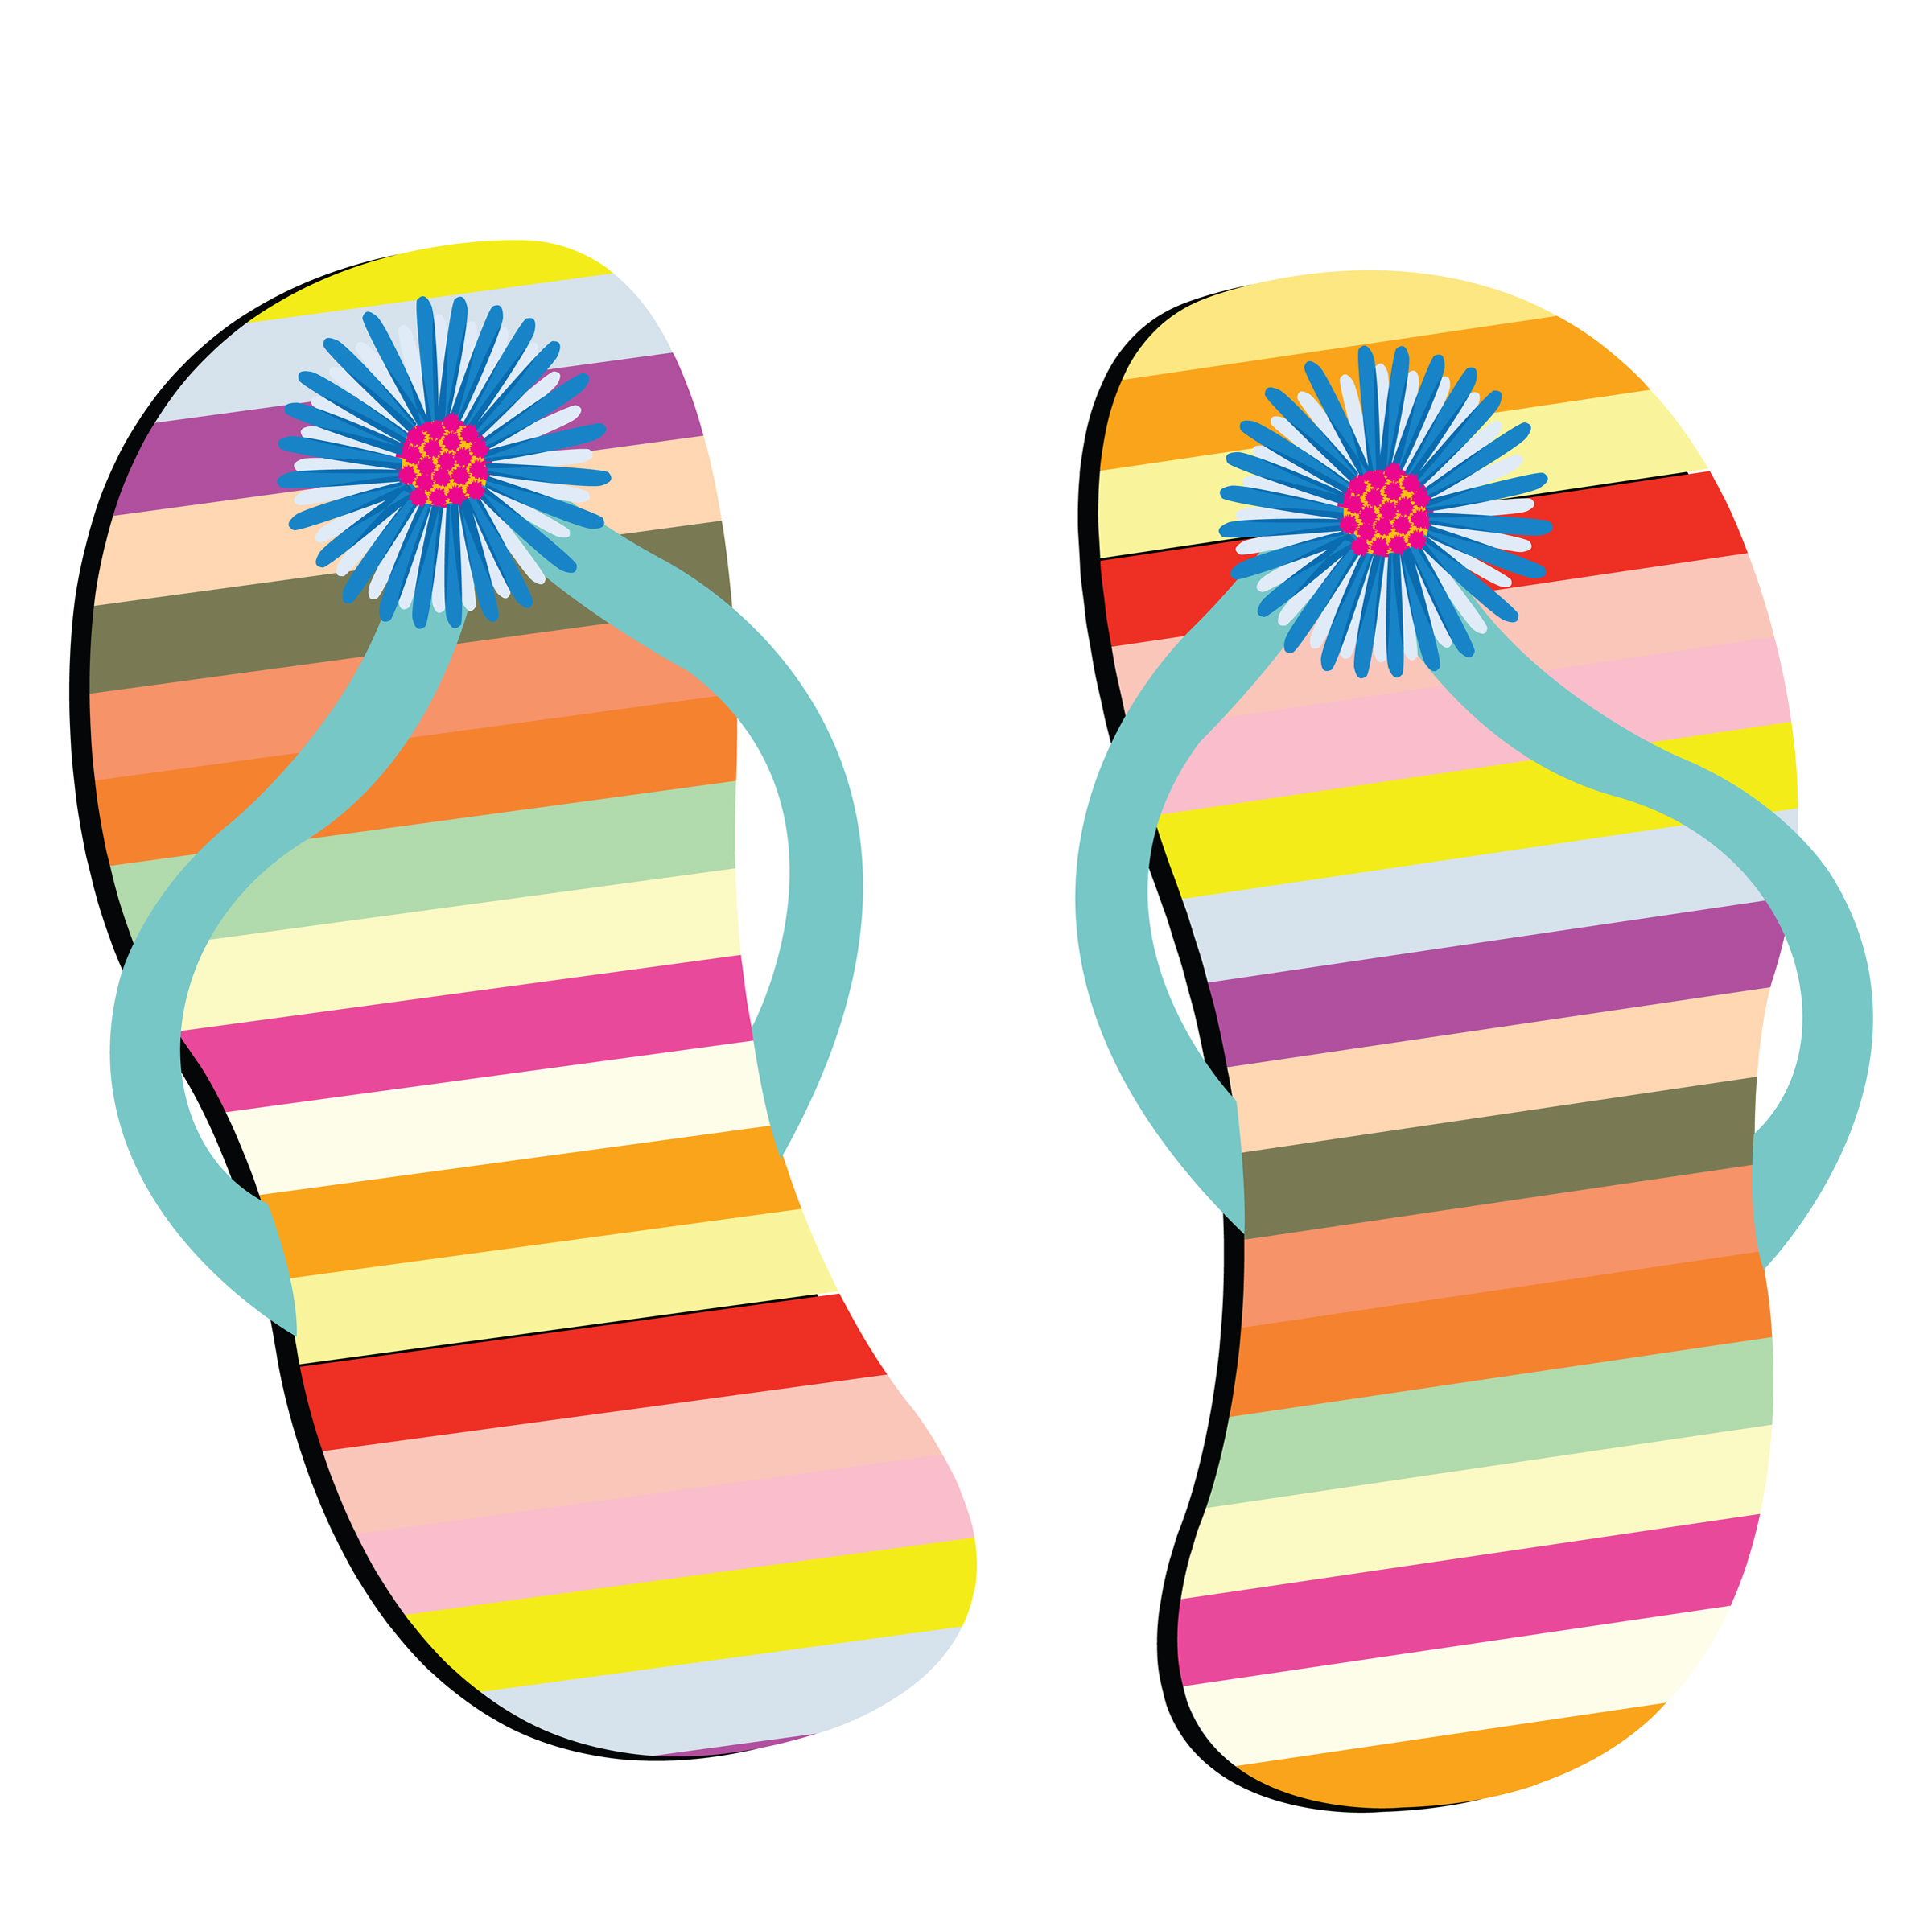 Free clipart images of flip flops png transparent download Free Beach Sandals Cliparts, Download Free Clip Art, Free Clip Art ... png transparent download